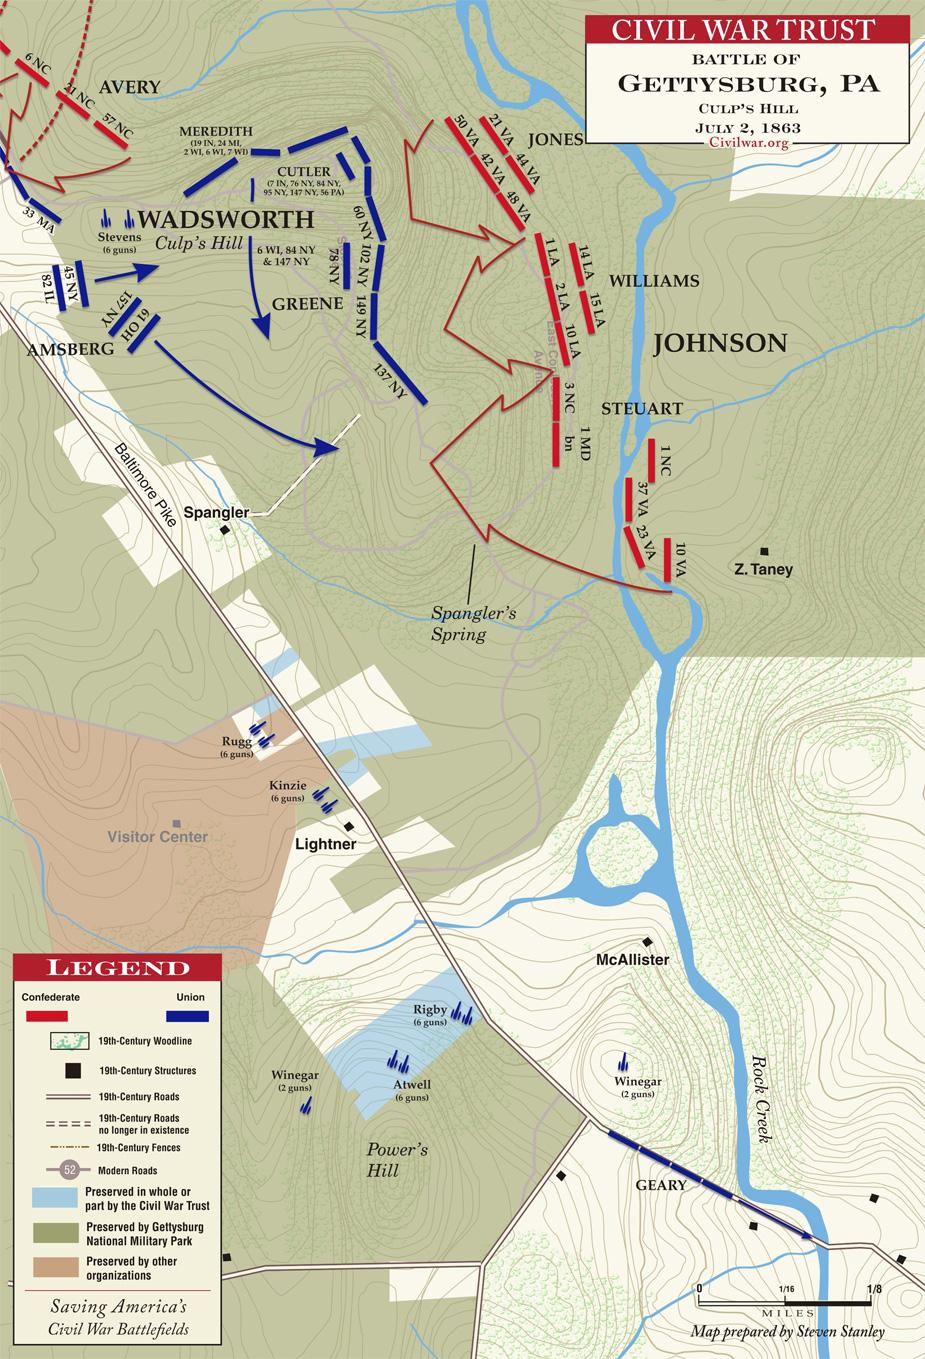 Culp's Hill at Gettysburg on July 2, 1863; note the position of 137th NY on the far right flank